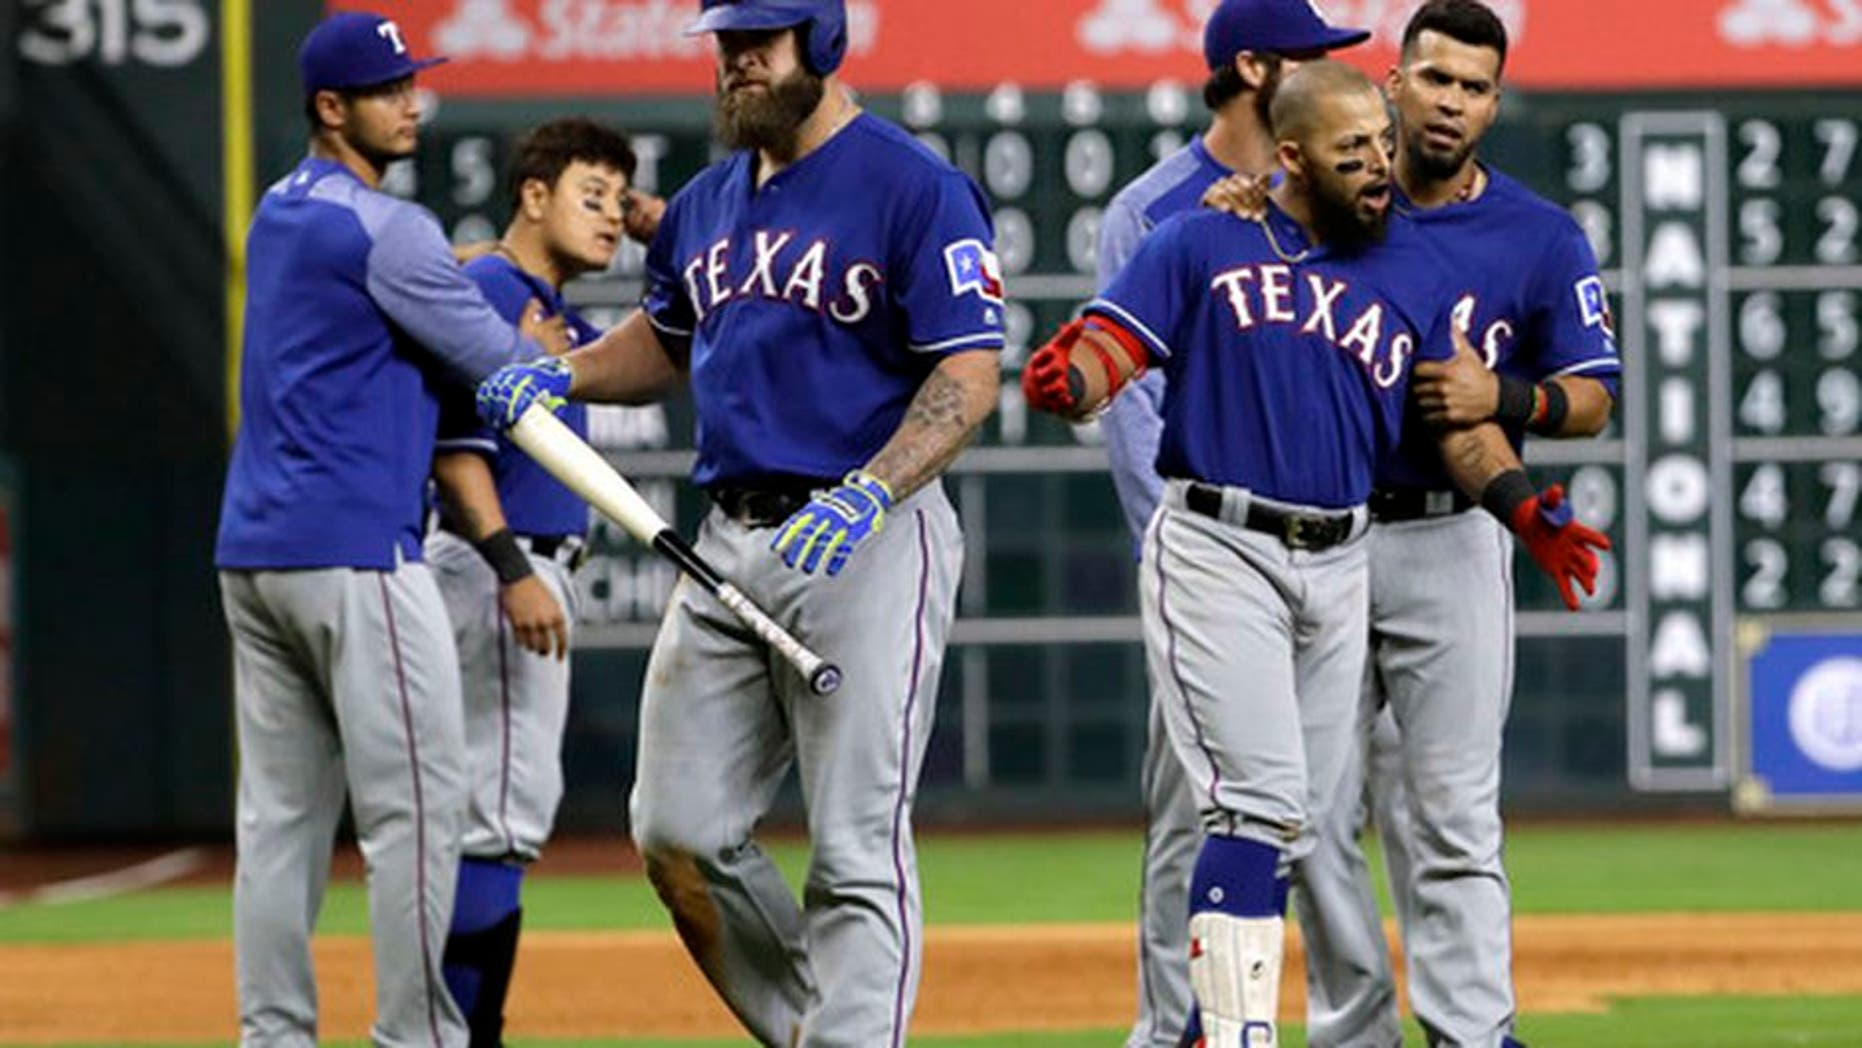 Texas Rangers' Mike Napoli, center, walks away as Rougned Odor, right, is restrained by Robinson Chirinos following a close pitch thrown by Houston Astros starting pitcher Lance McCullers Jr. to Napoli during the sixth inning of a baseball game, Monday, May 1, 2017, in Houston. (AP Photo/David J. Phillip)